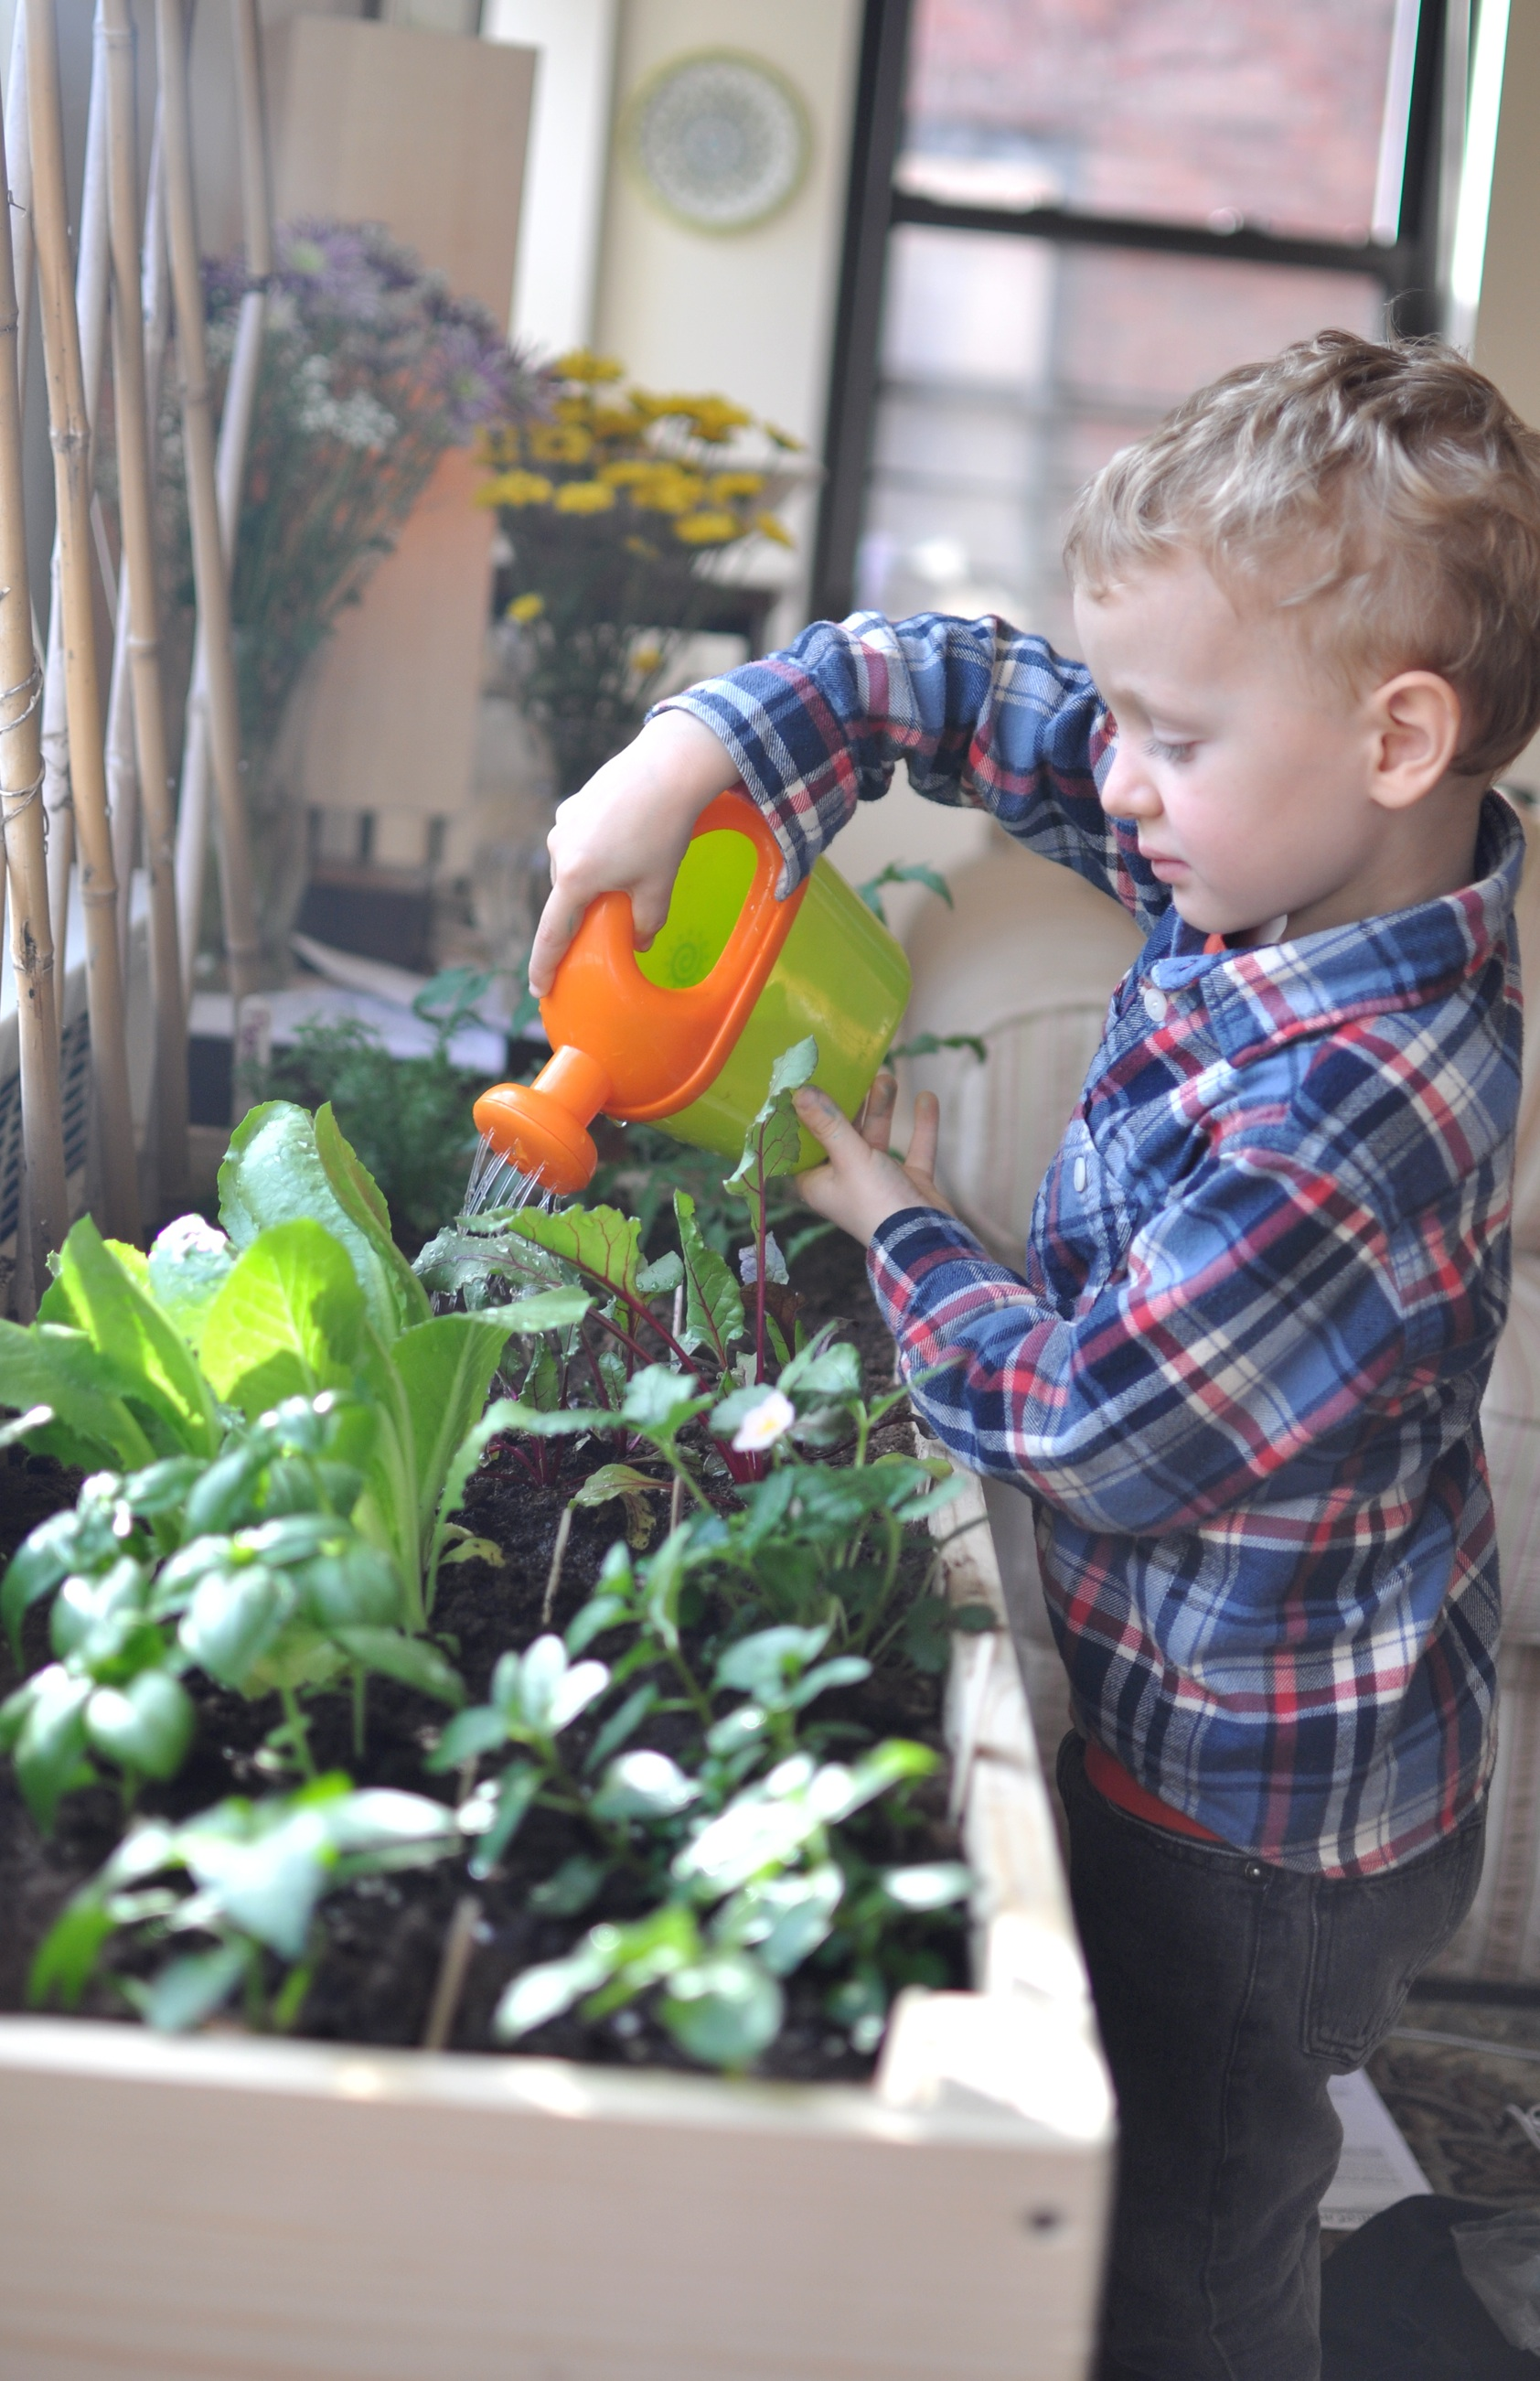 2013 04 27 feindoorgardenjpg - Vegetable Garden Ideas For Kids